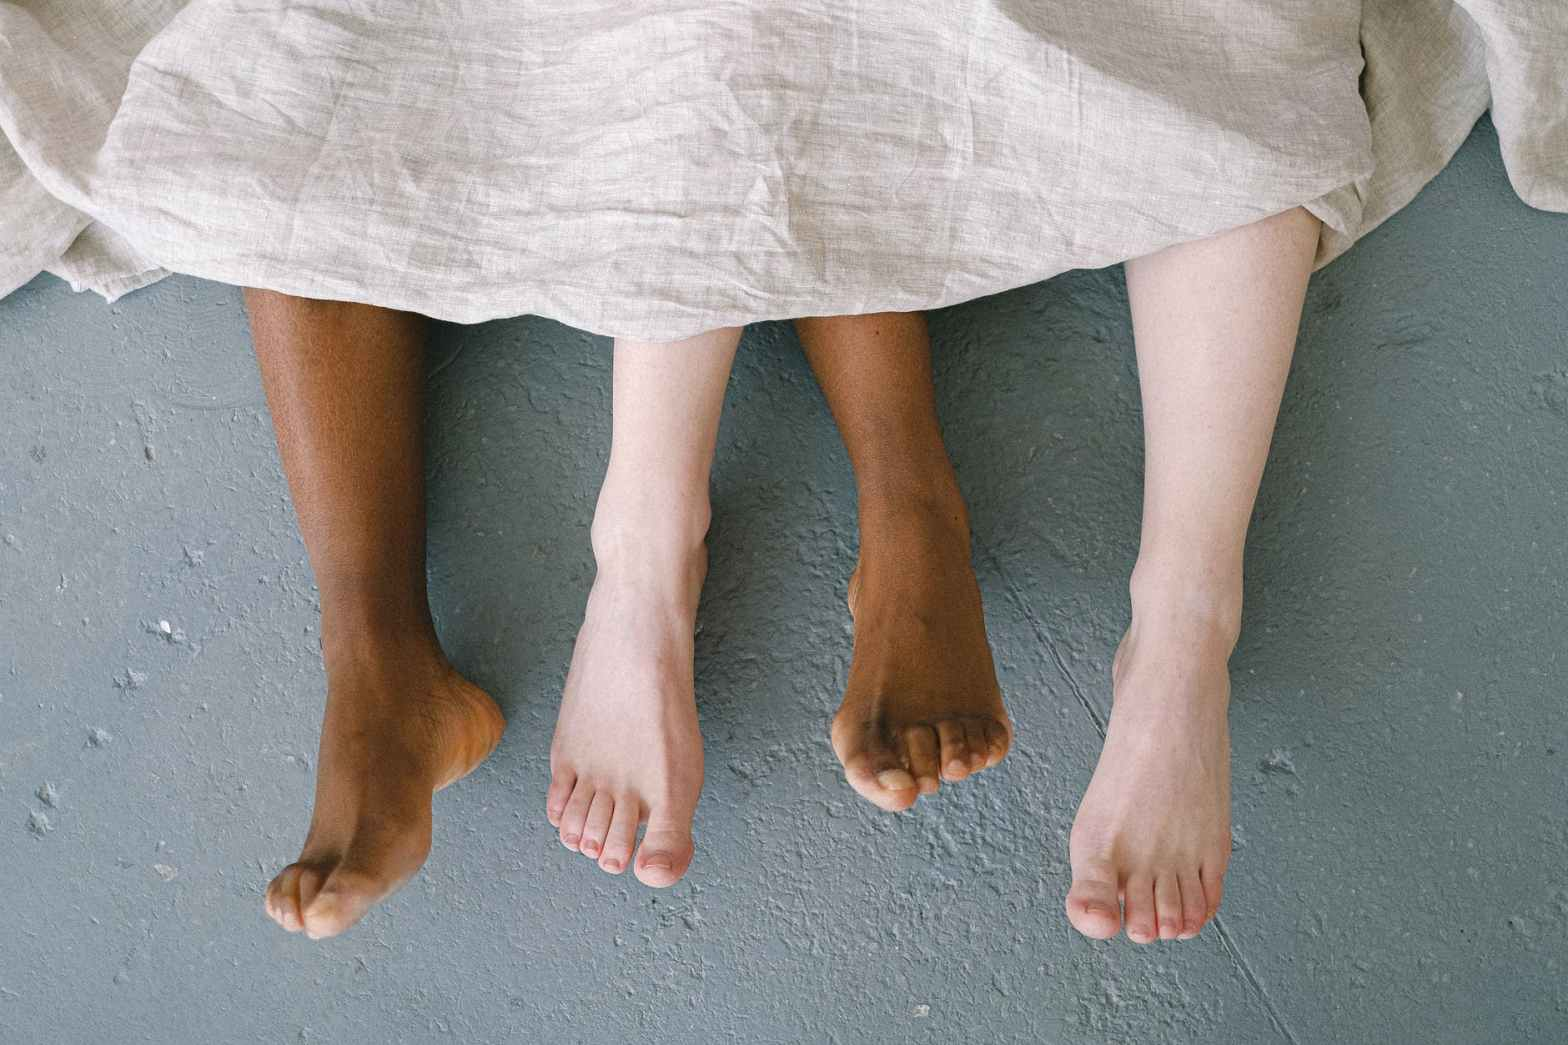 bare feet coming out of bed sheets